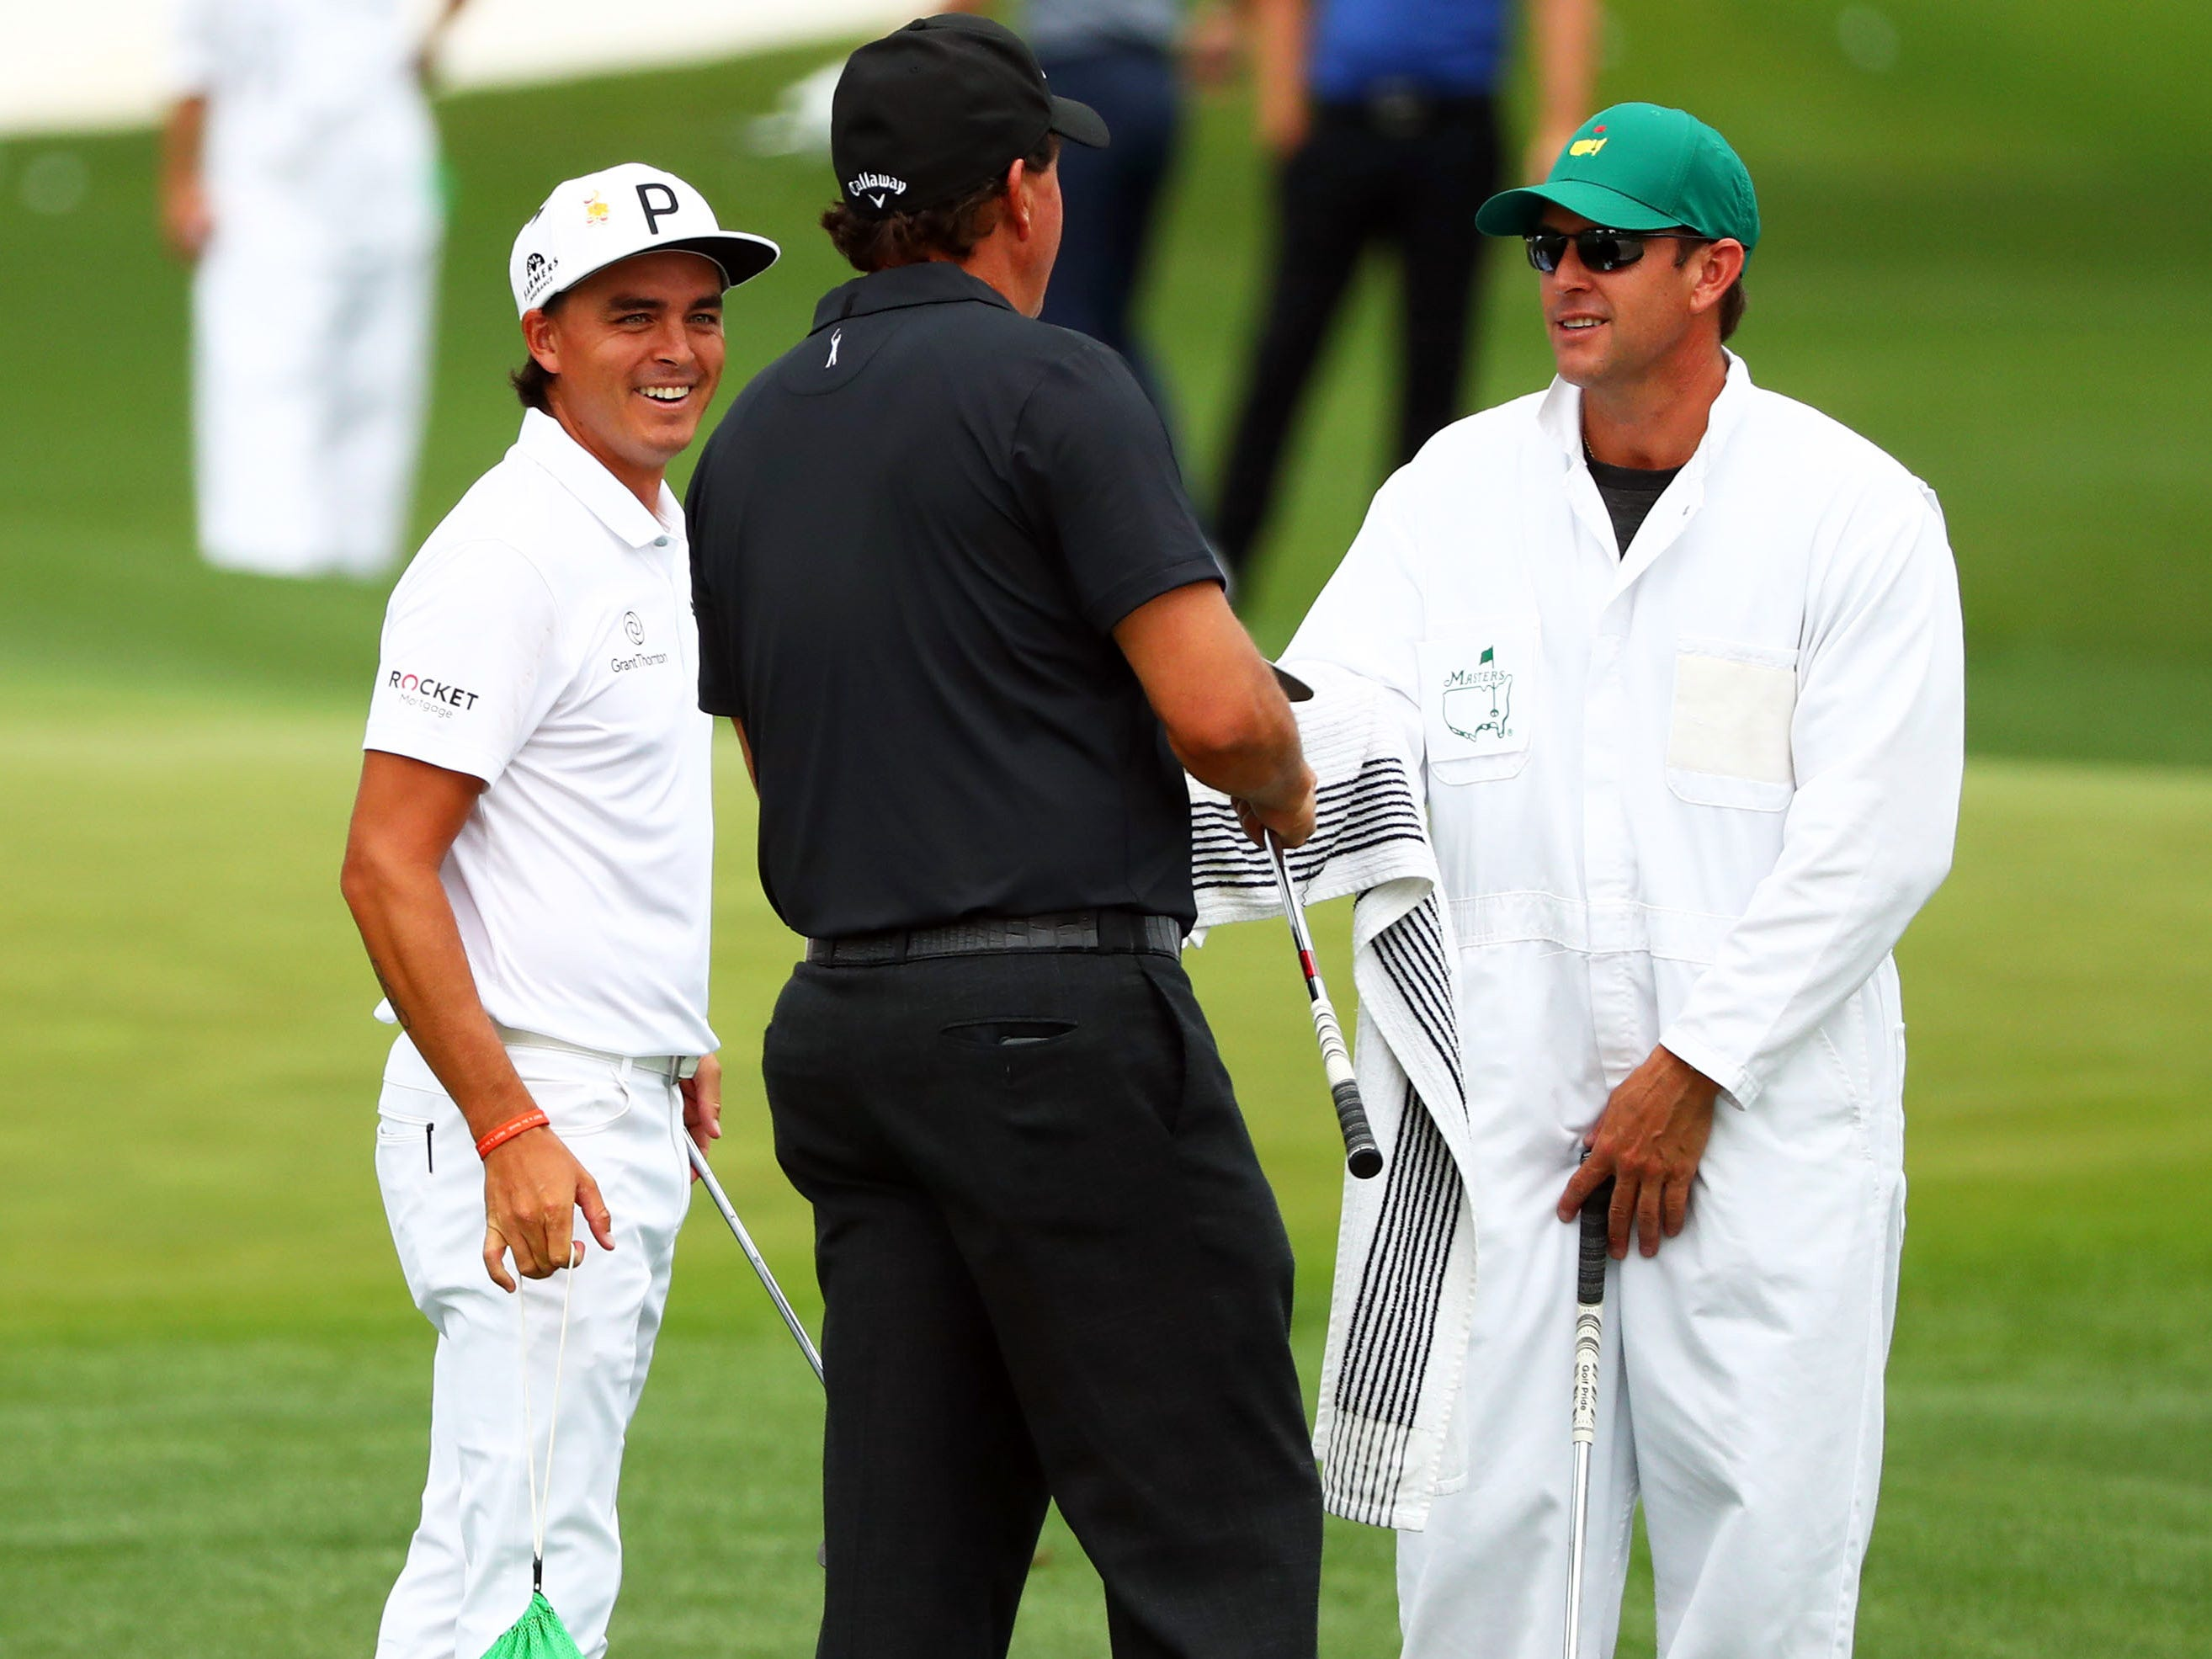 Apr 8, 2019; Augusta, GA, USA; Phil Mickelson talks to Rickie Fowler (left) at the practice facility during a practice round for the Masters golf tournament at Augusta National Golf Club.